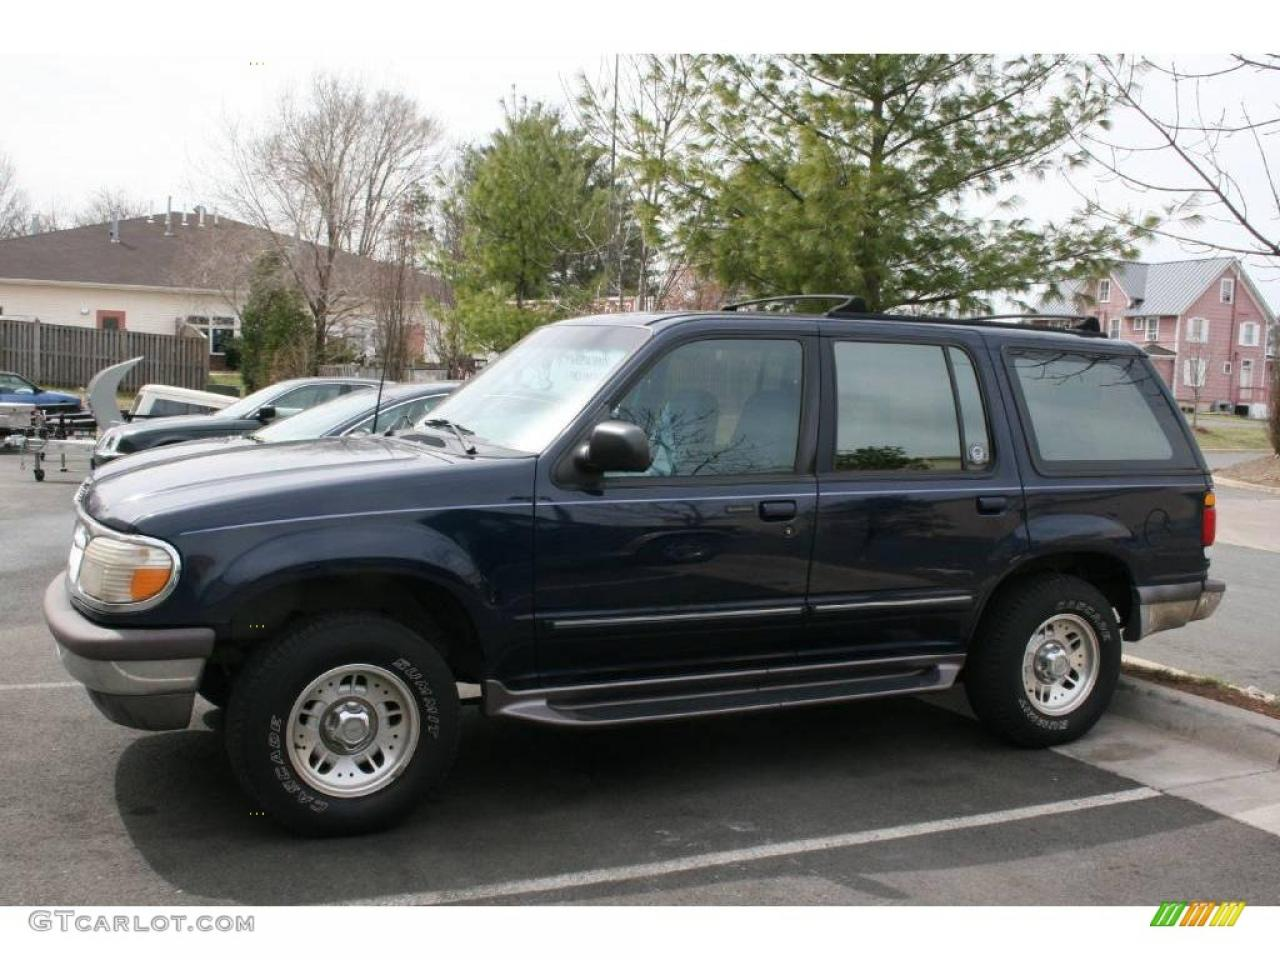 1995 Ford Explorer Information And Photos Zombiedrive 2001 Eddie Bauer Expedition 4wd 5 4 Liter Engine Diagram 800 1024 1280 1600 Origin